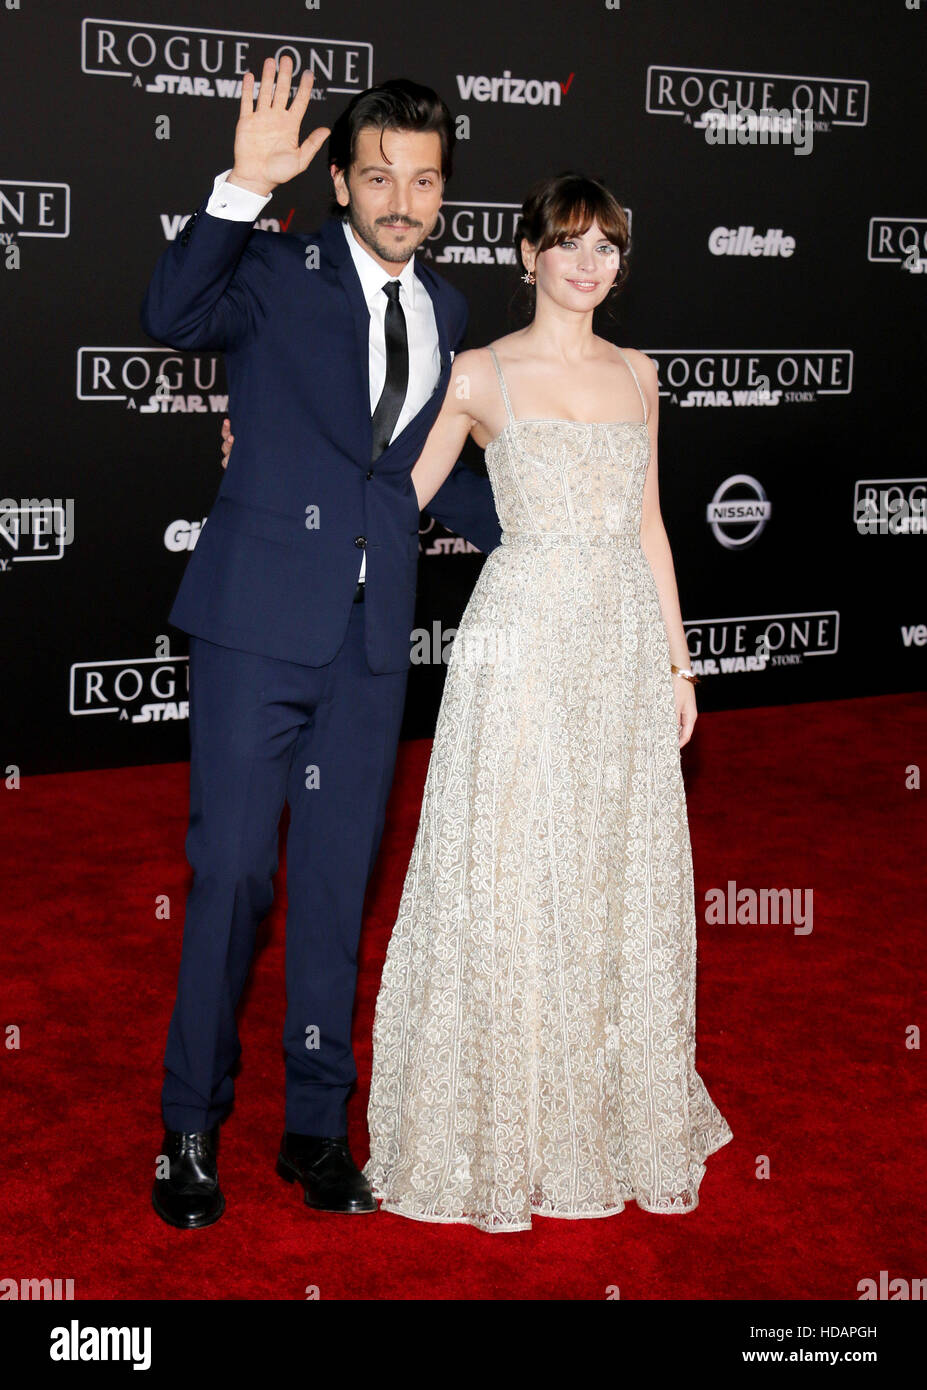 Hollywood, California, USA. Decimo Dec, 2016. Felicity Jones e Diego Luna alla premiere mondiale di 'Rogue uno: Immagini Stock